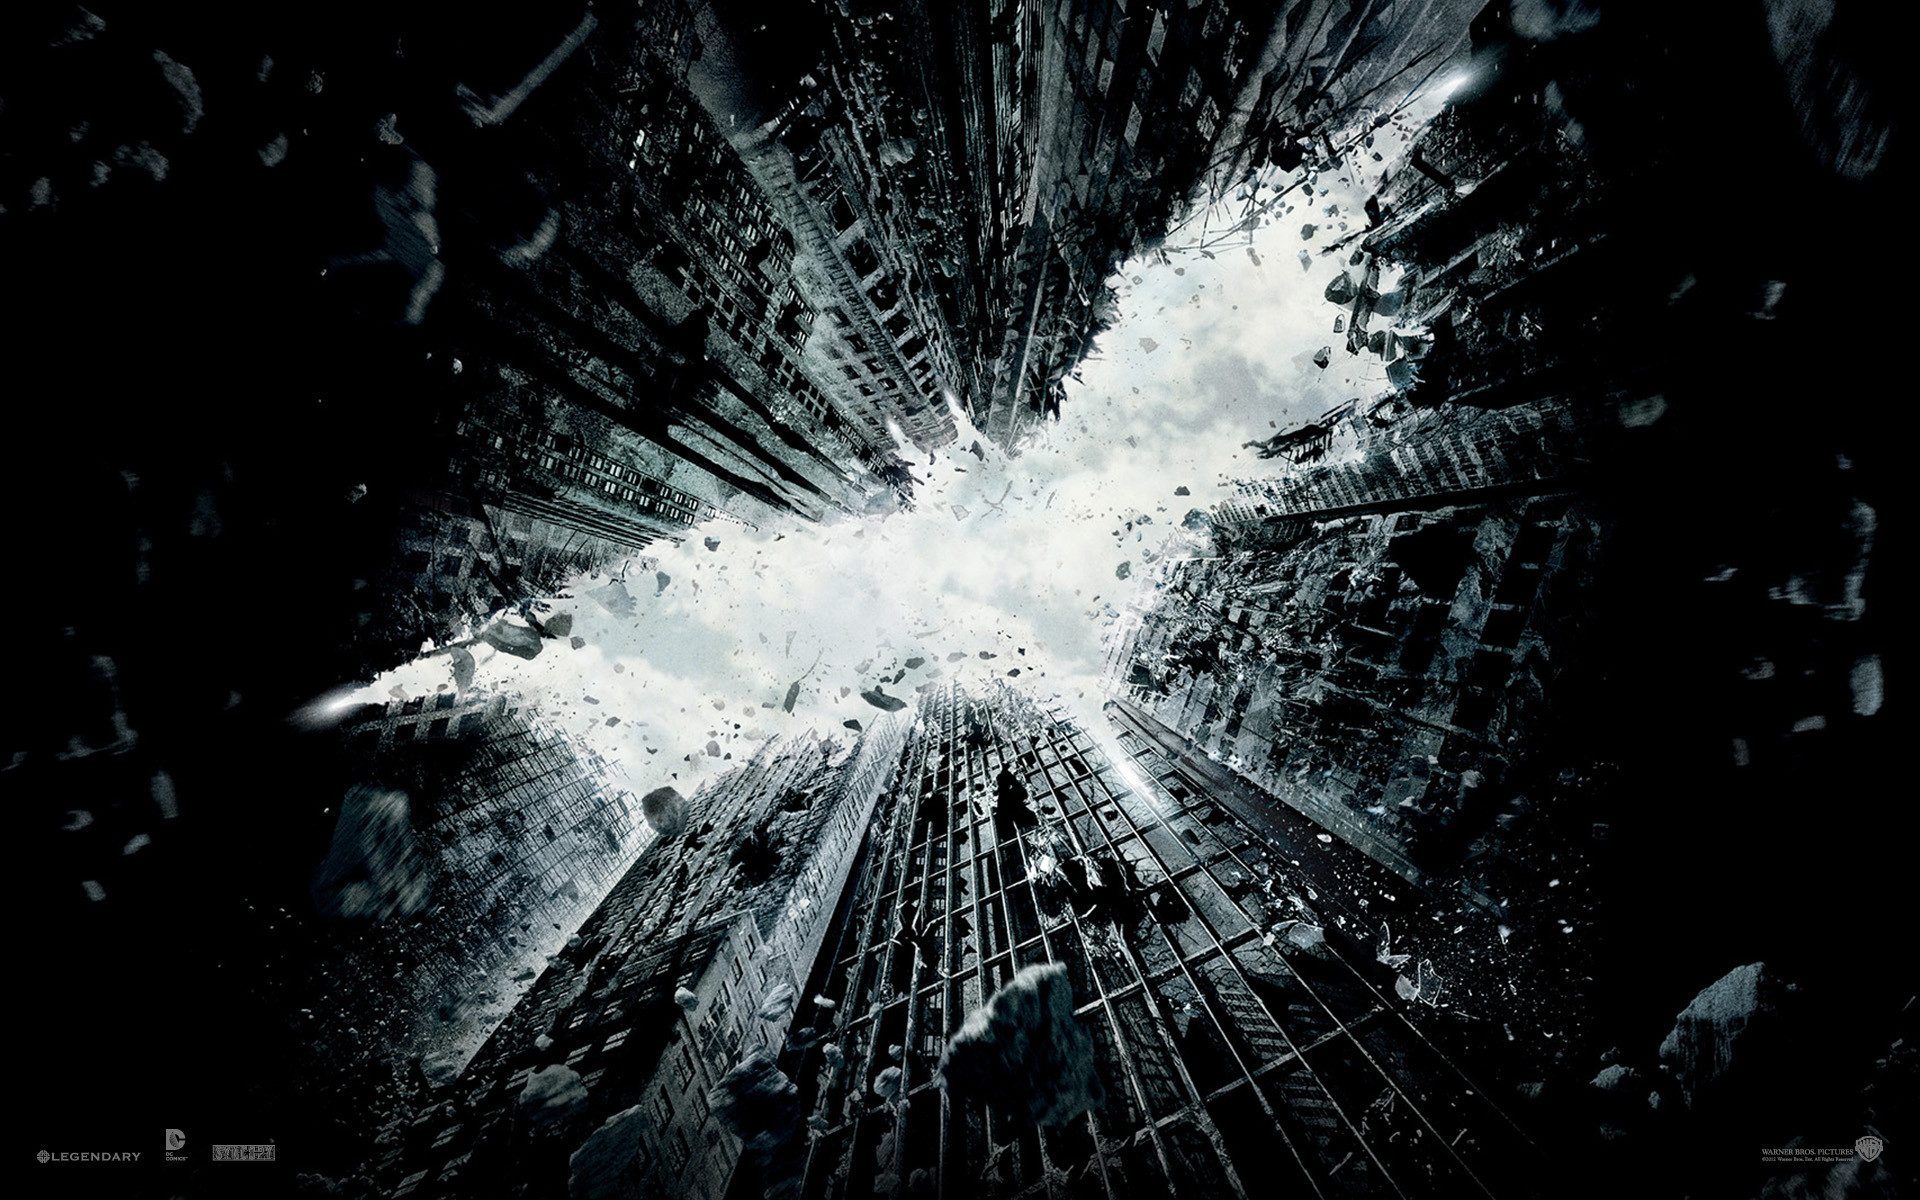 1920x1200 'The Dark Knight Rises' Wallpapers: Decorate Your Desktop, Batman Style